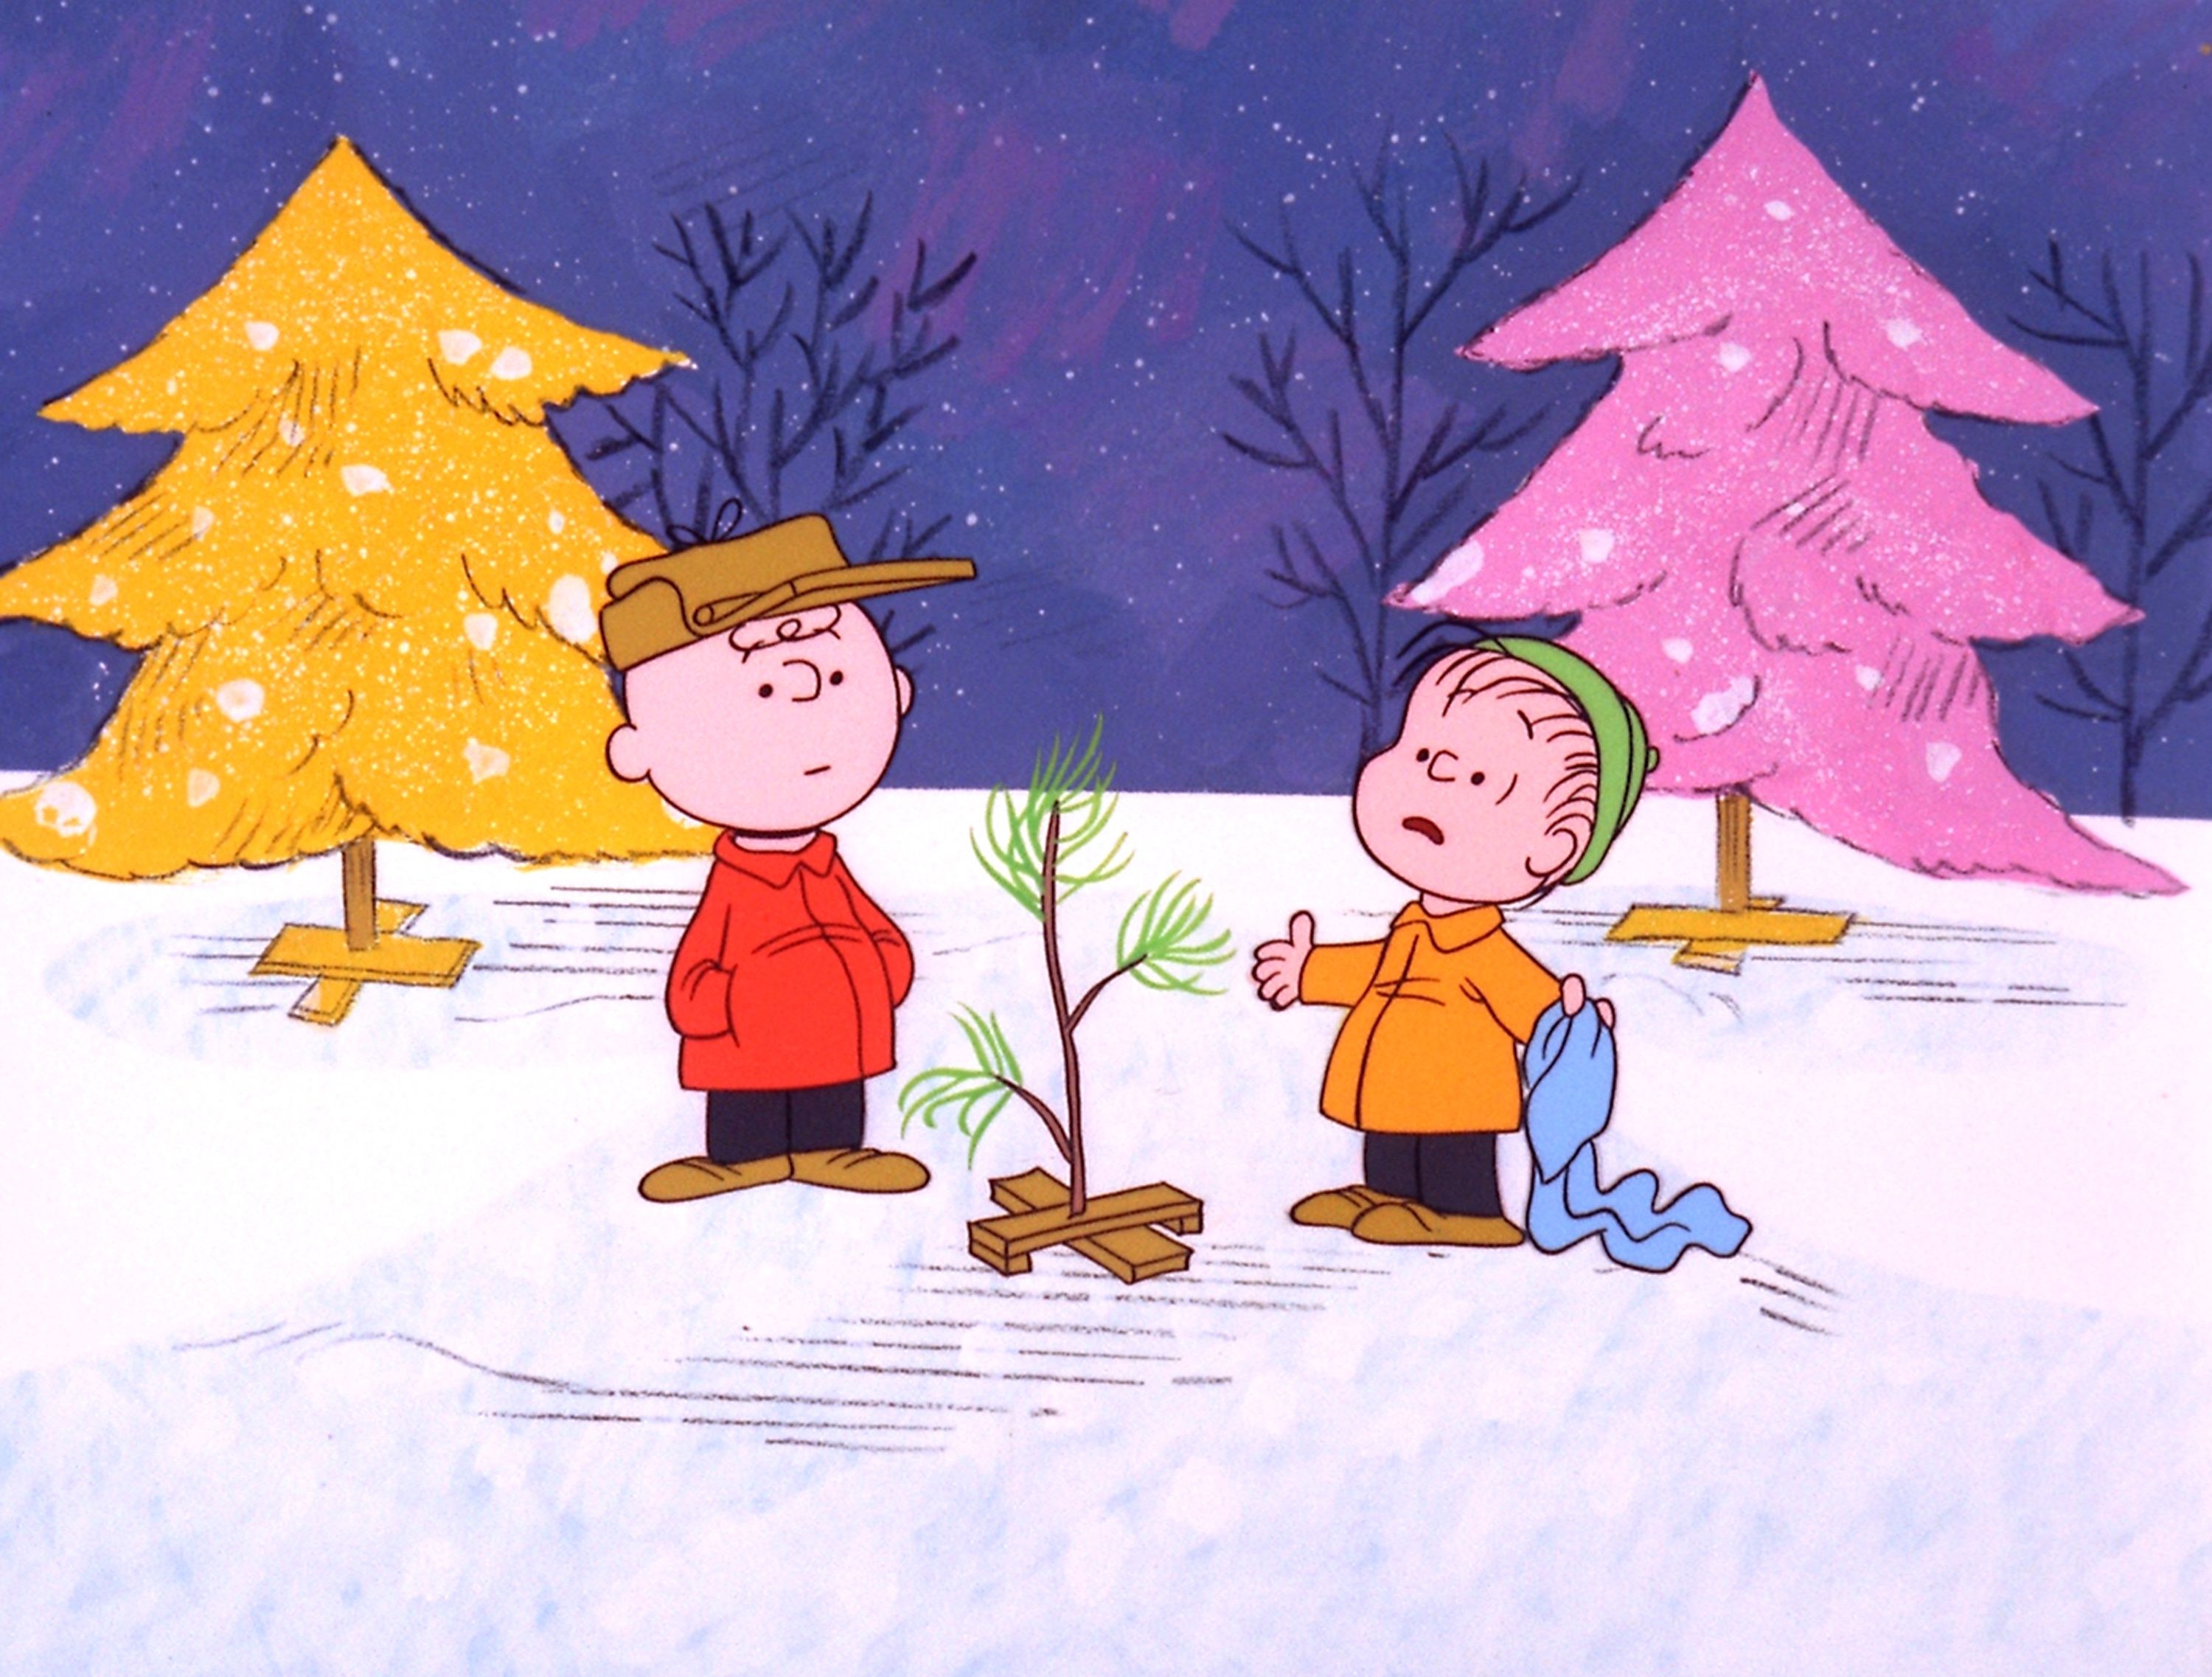 15 Best Quotes From \u0027A Charlie Brown Christmas\u0027 Movie for